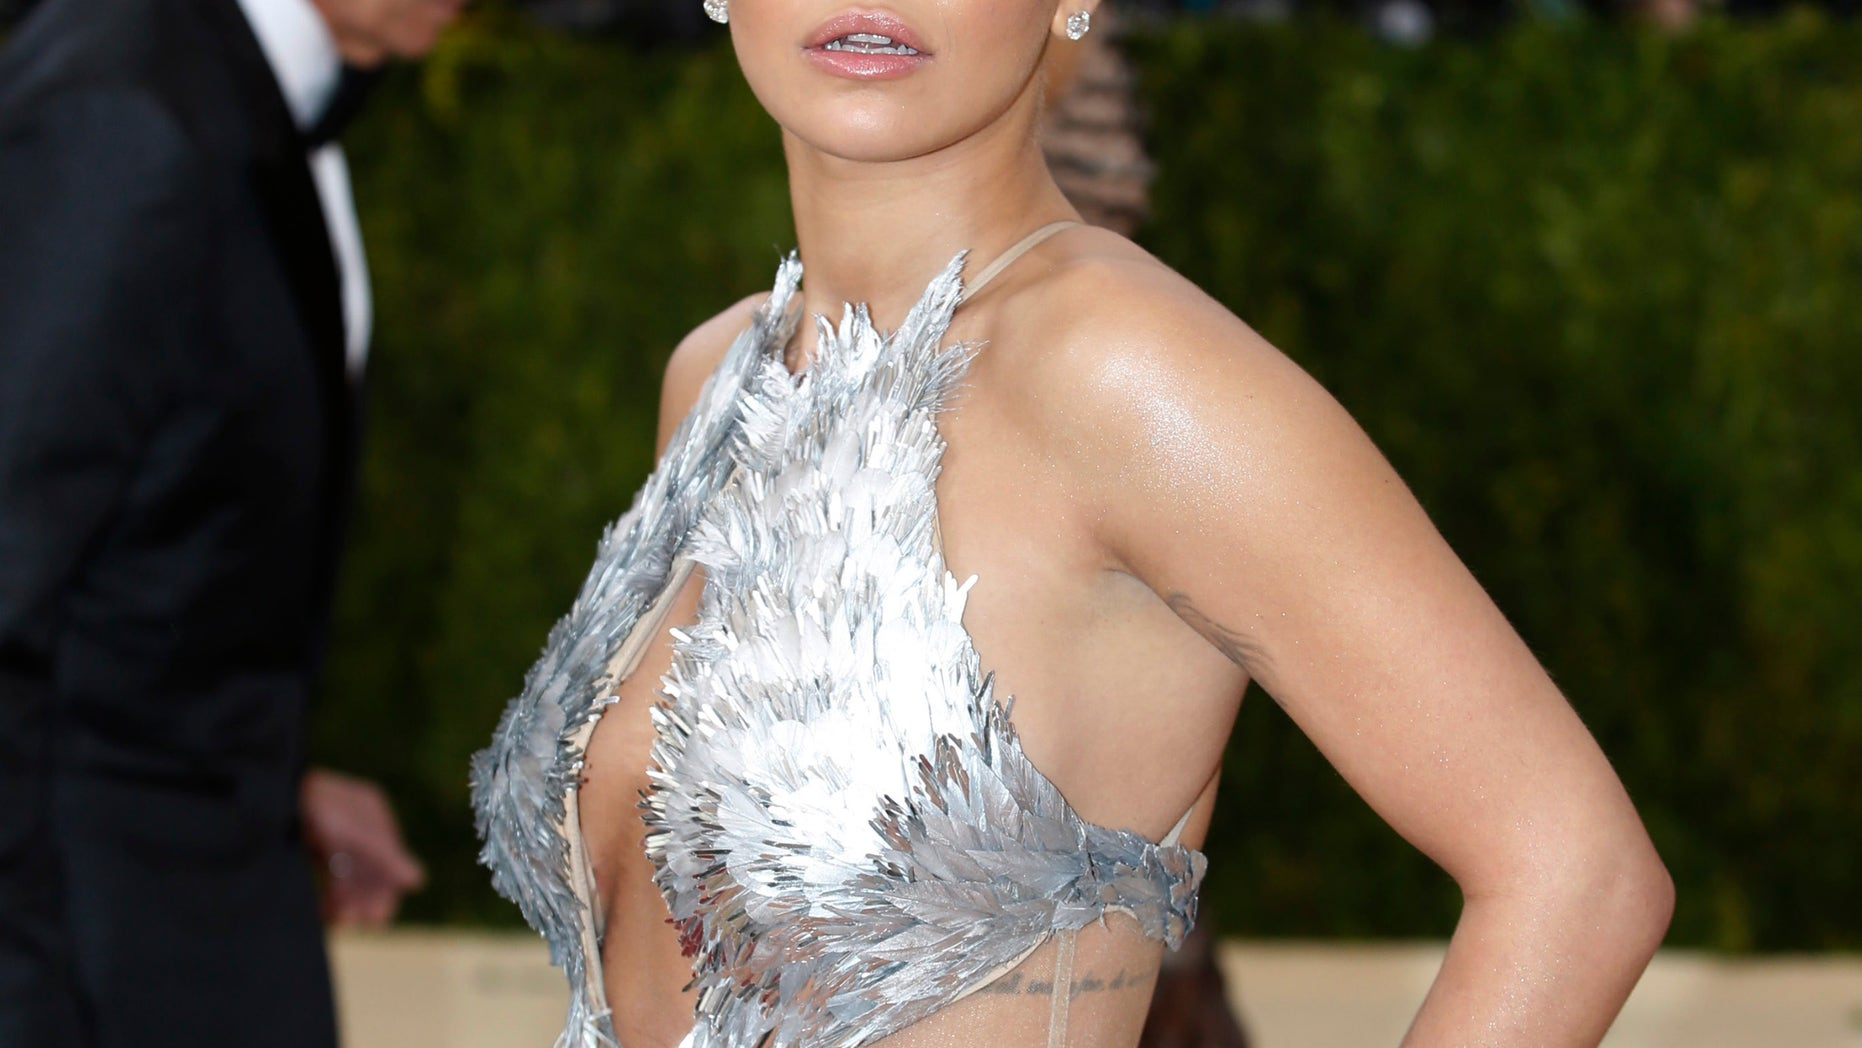 """Singer Rita Ora arrives at the Metropolitan Museum of Art Costume Institute Gala (Met Gala) to celebrate the opening of """"Manus x Machina: Fashion in an Age of Technology"""" in the Manhattan borough of New York, May 2, 2016. REUTERS/Eduardo Munoz - RTX2CIE7"""